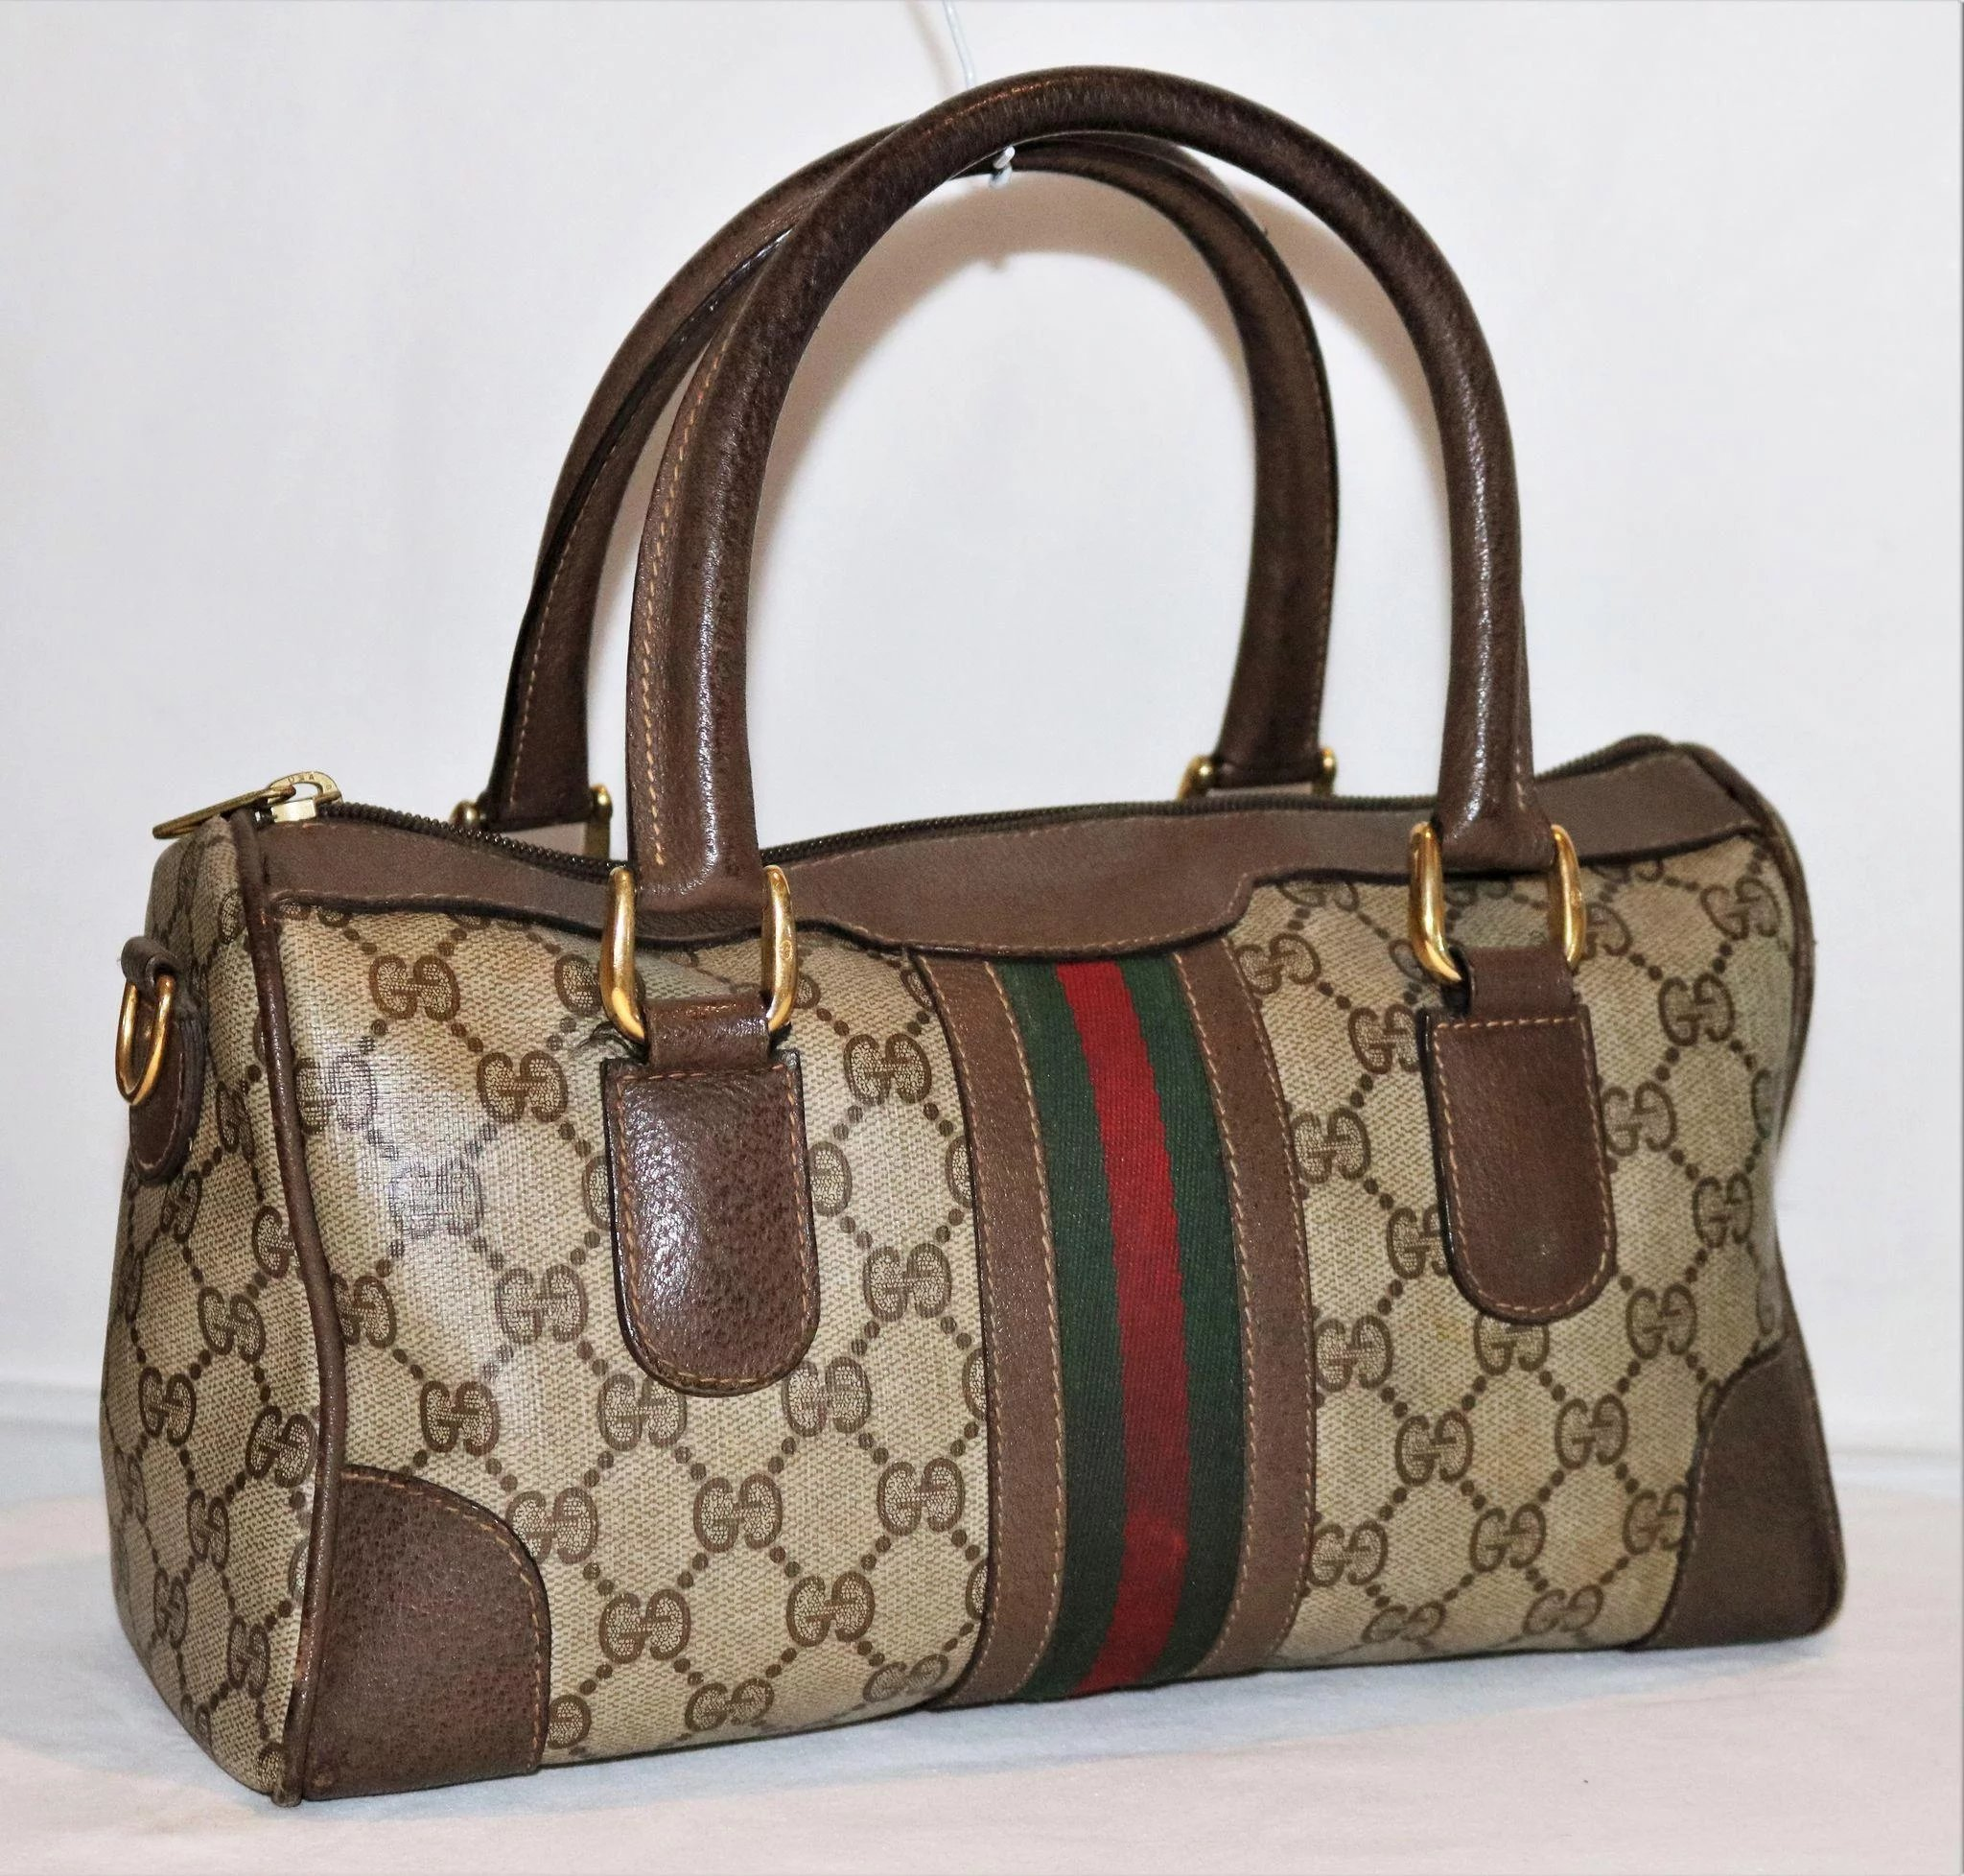 01b8408ced7 Vintage Gucci Boston Bag Rare Medium Model. Click to expand